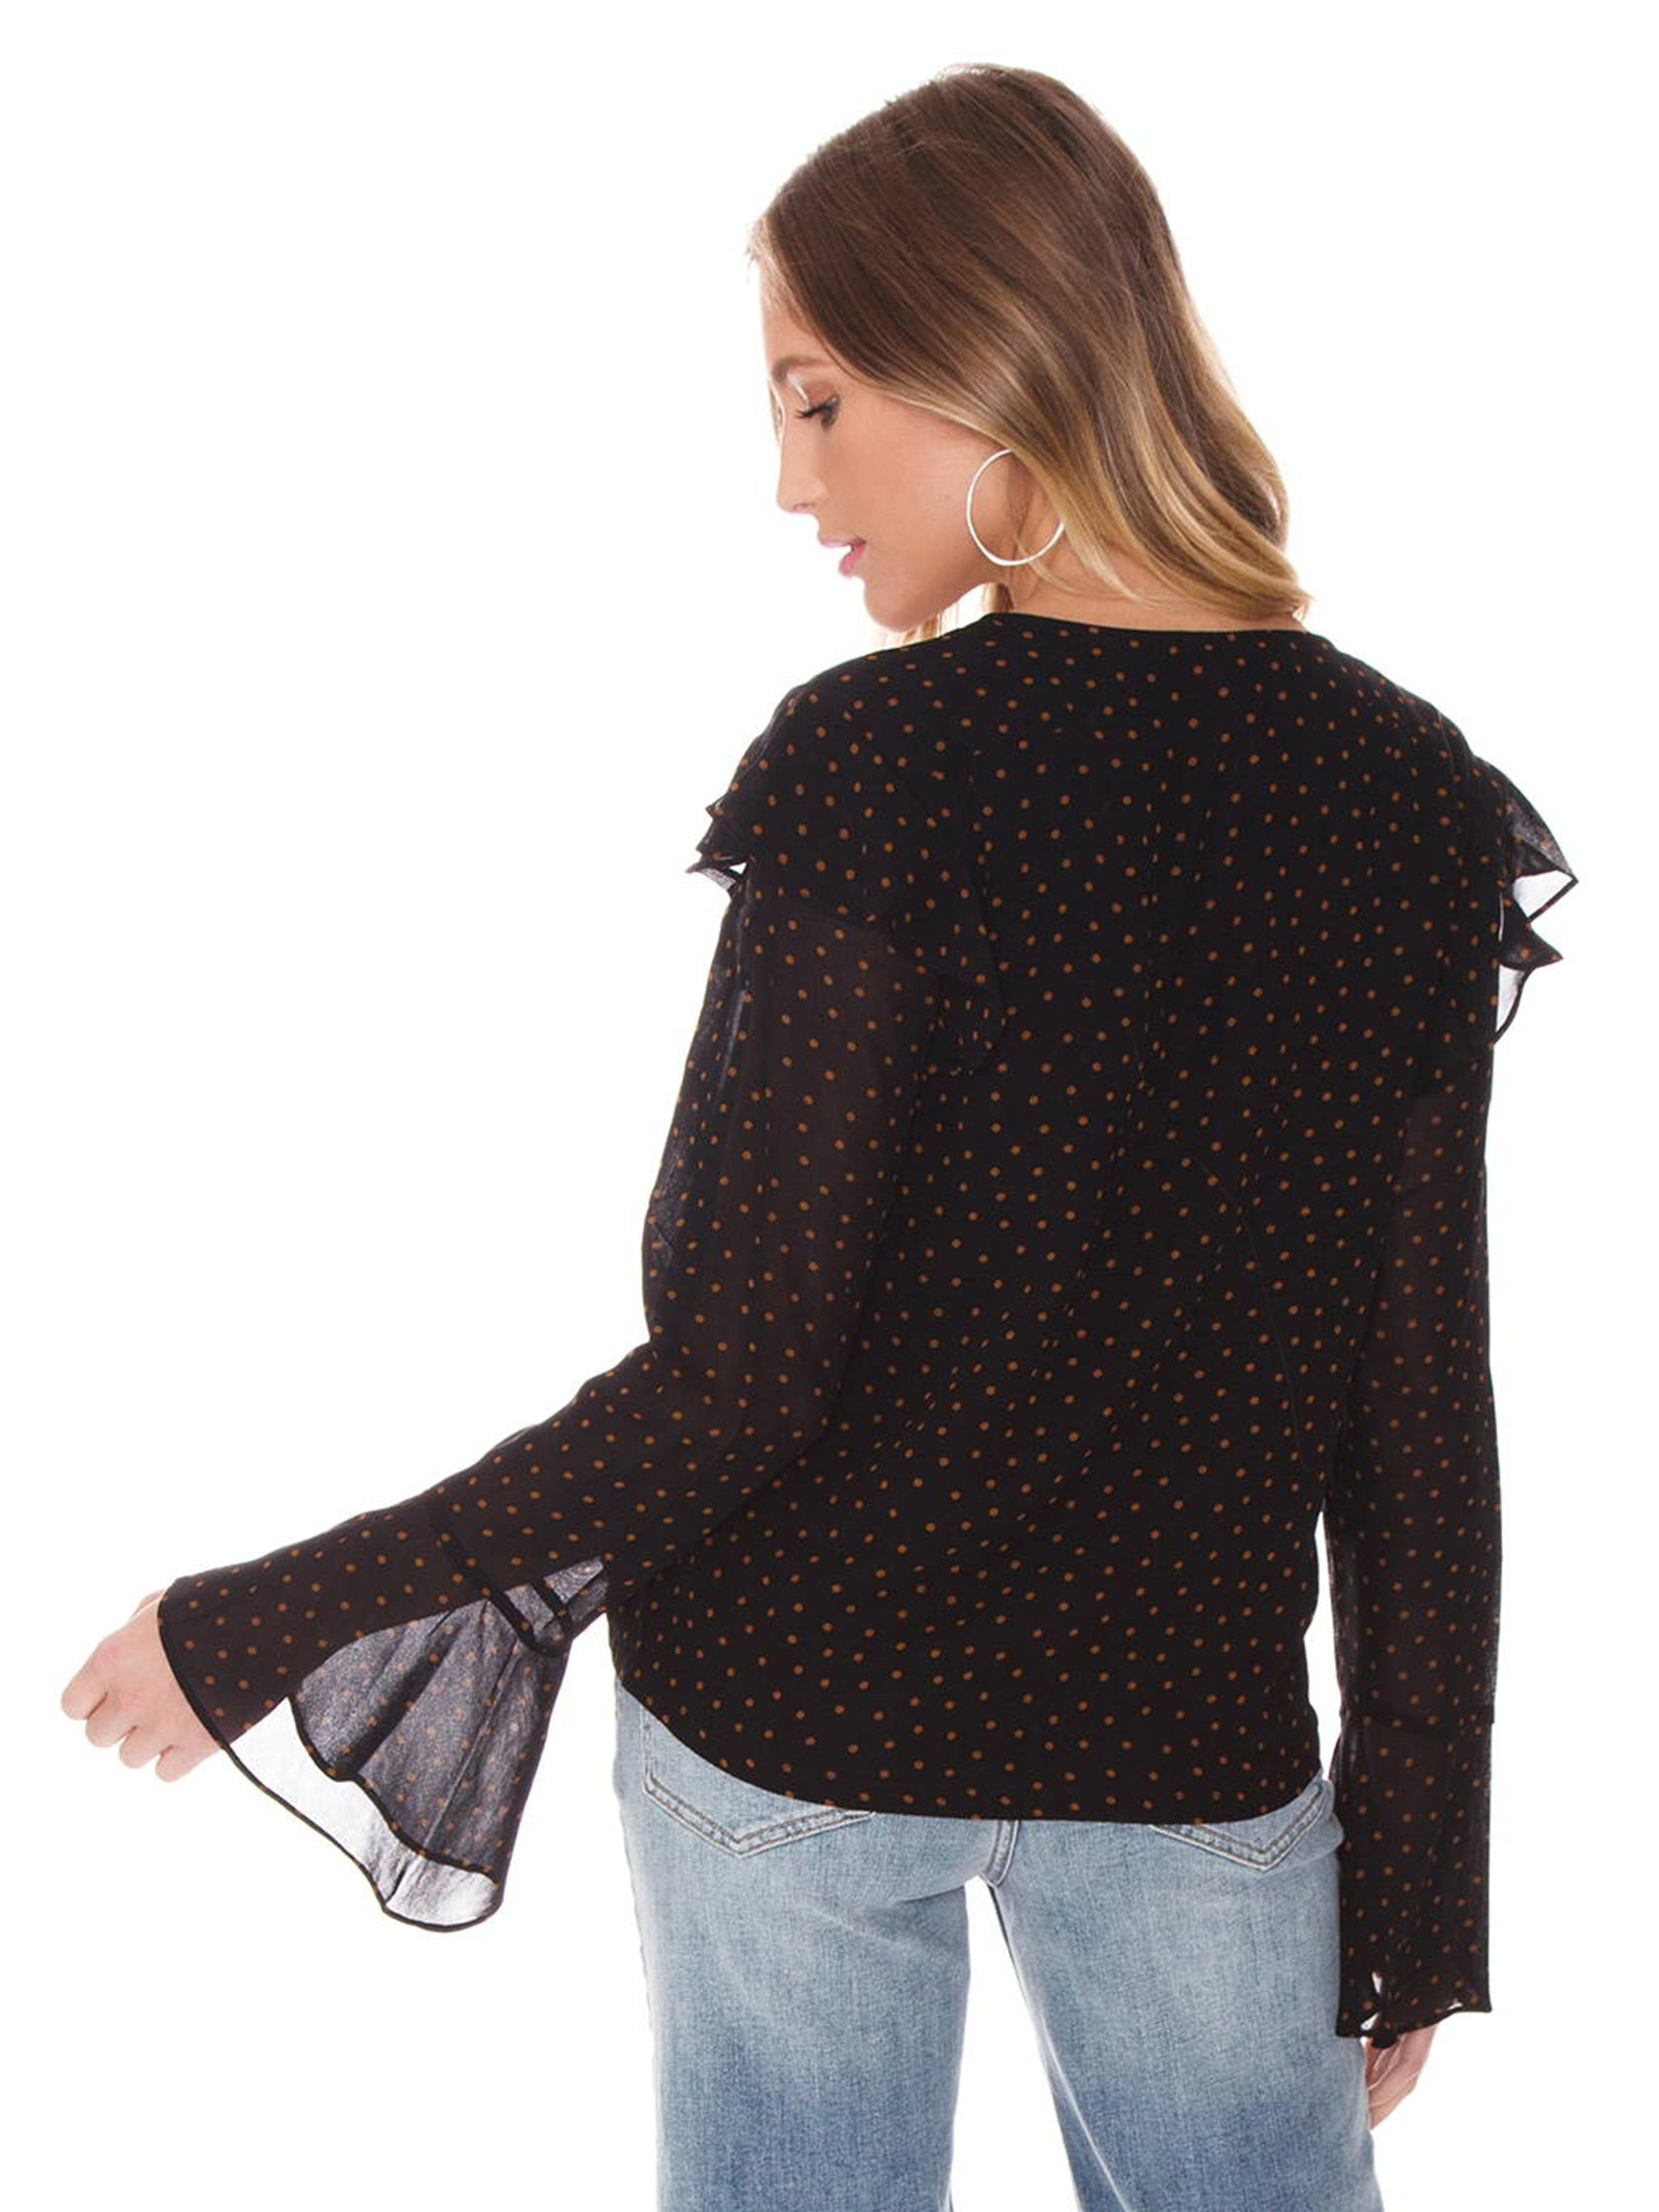 Women outfit in a top rental from SANCTUARY called Cori Ruffle Wrap Blouse